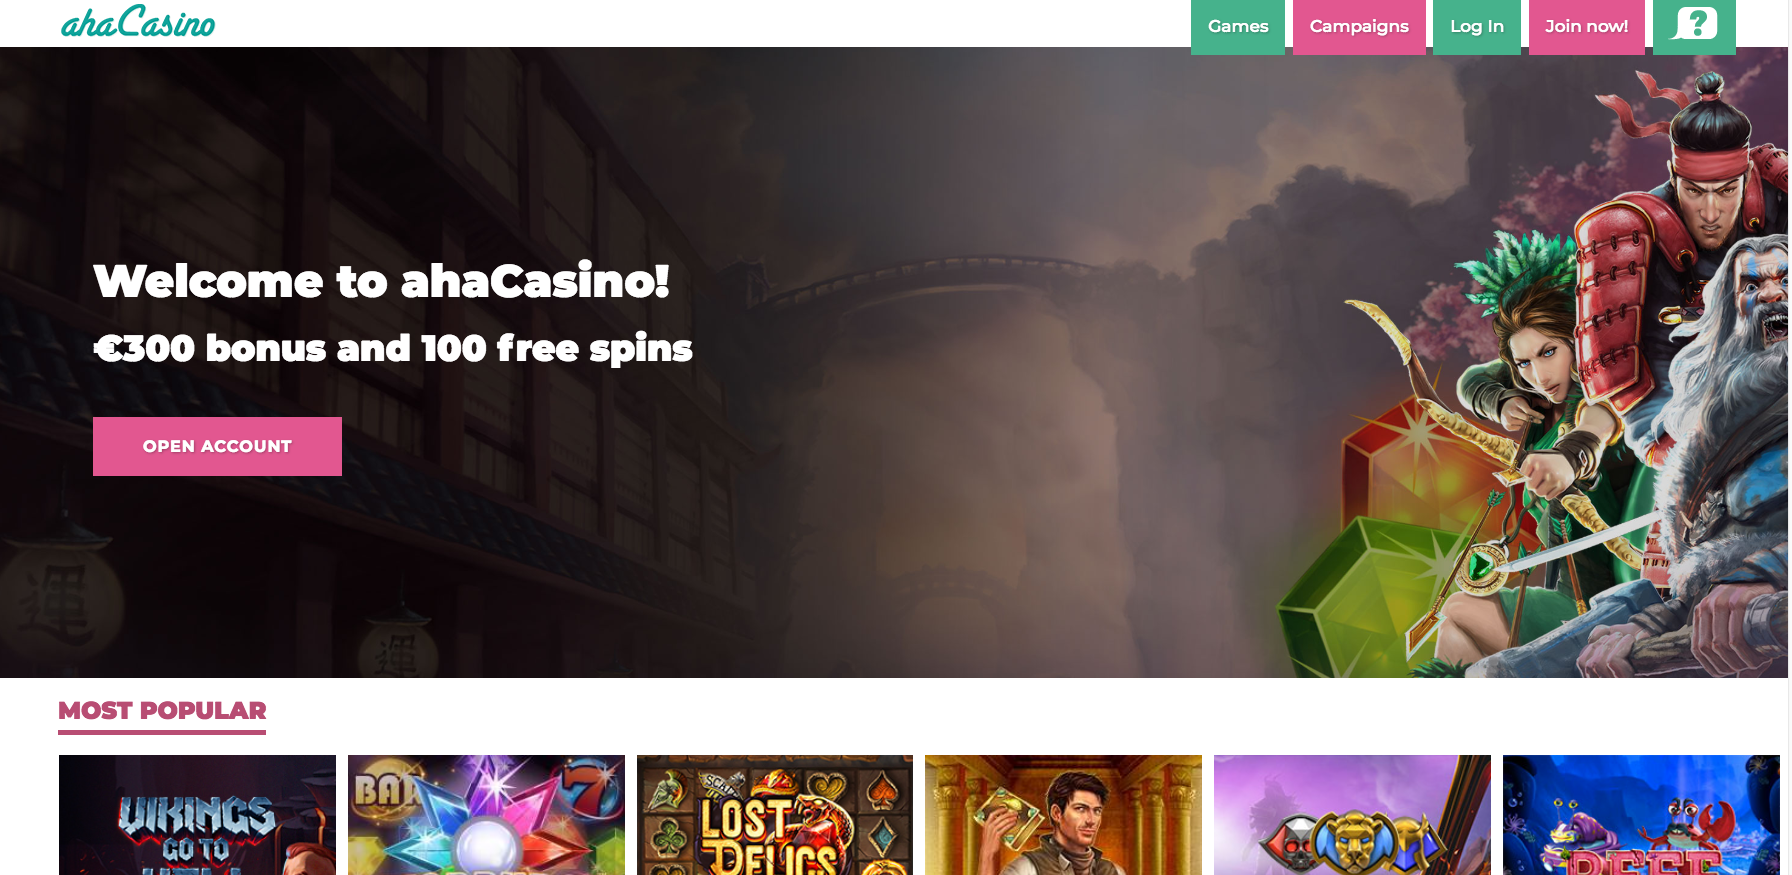 ahaCasino Bonus Offer